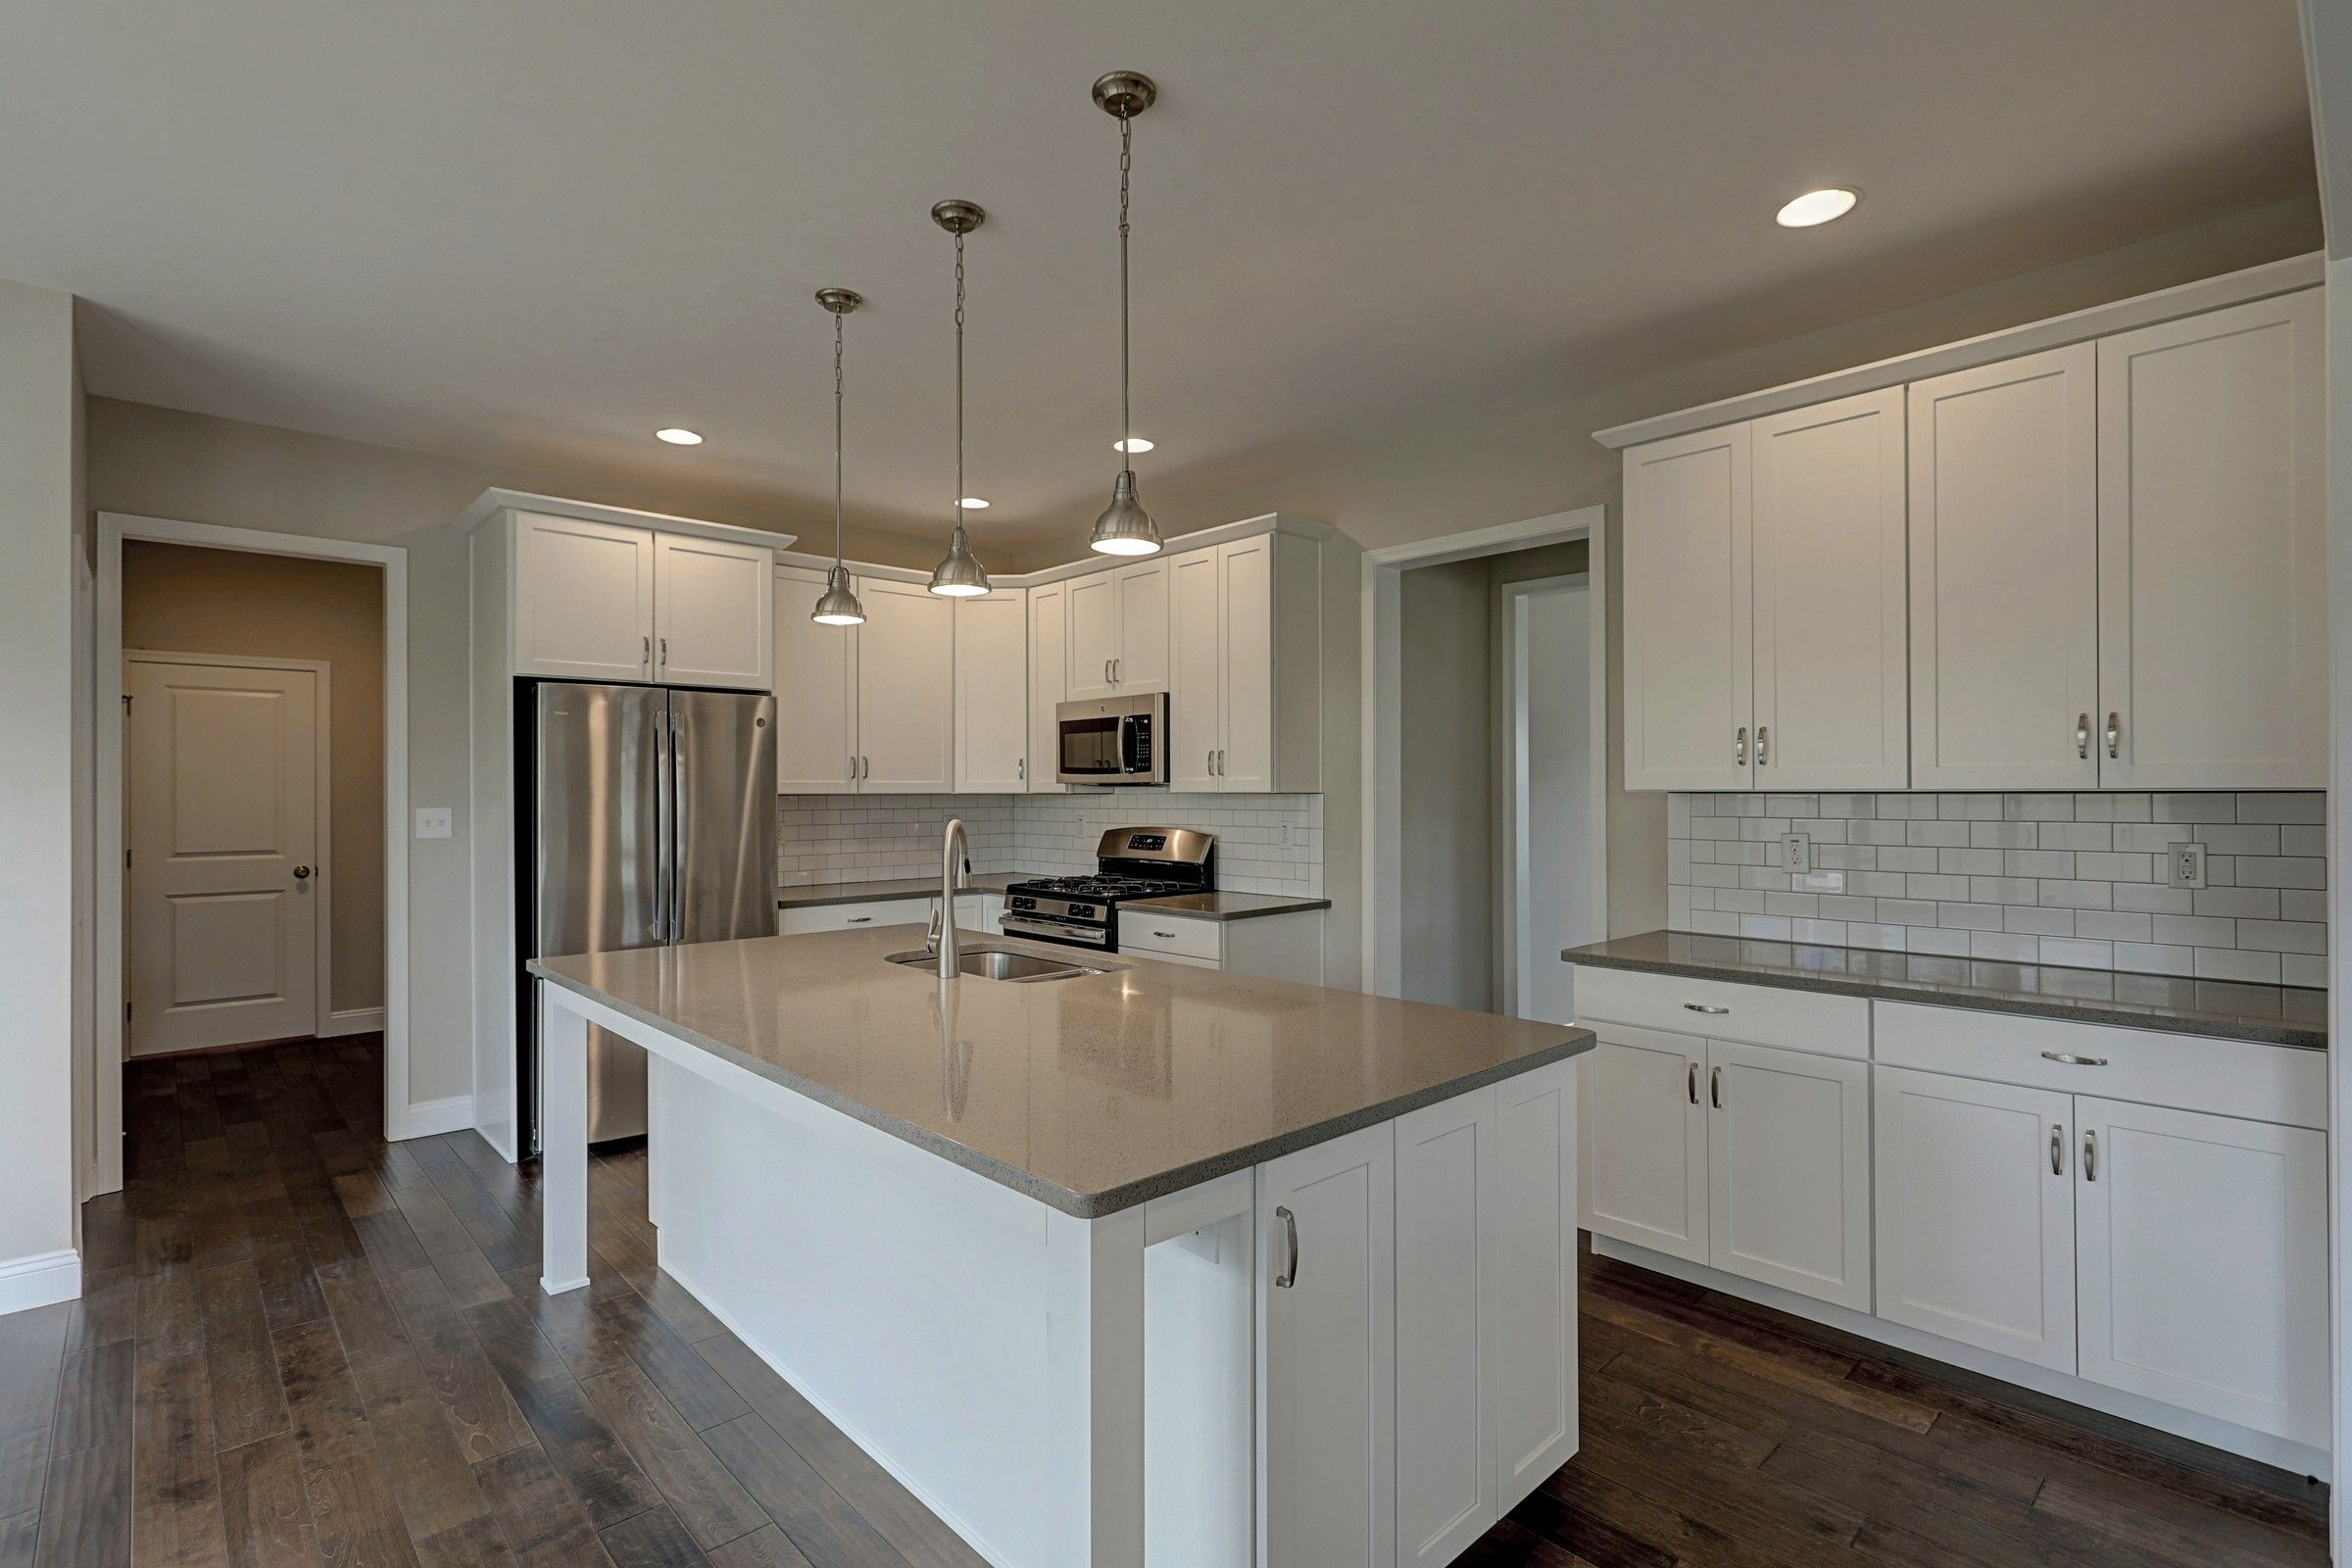 Kitchen featured in the Parker Heritage By Keystone Custom Homes in York, PA